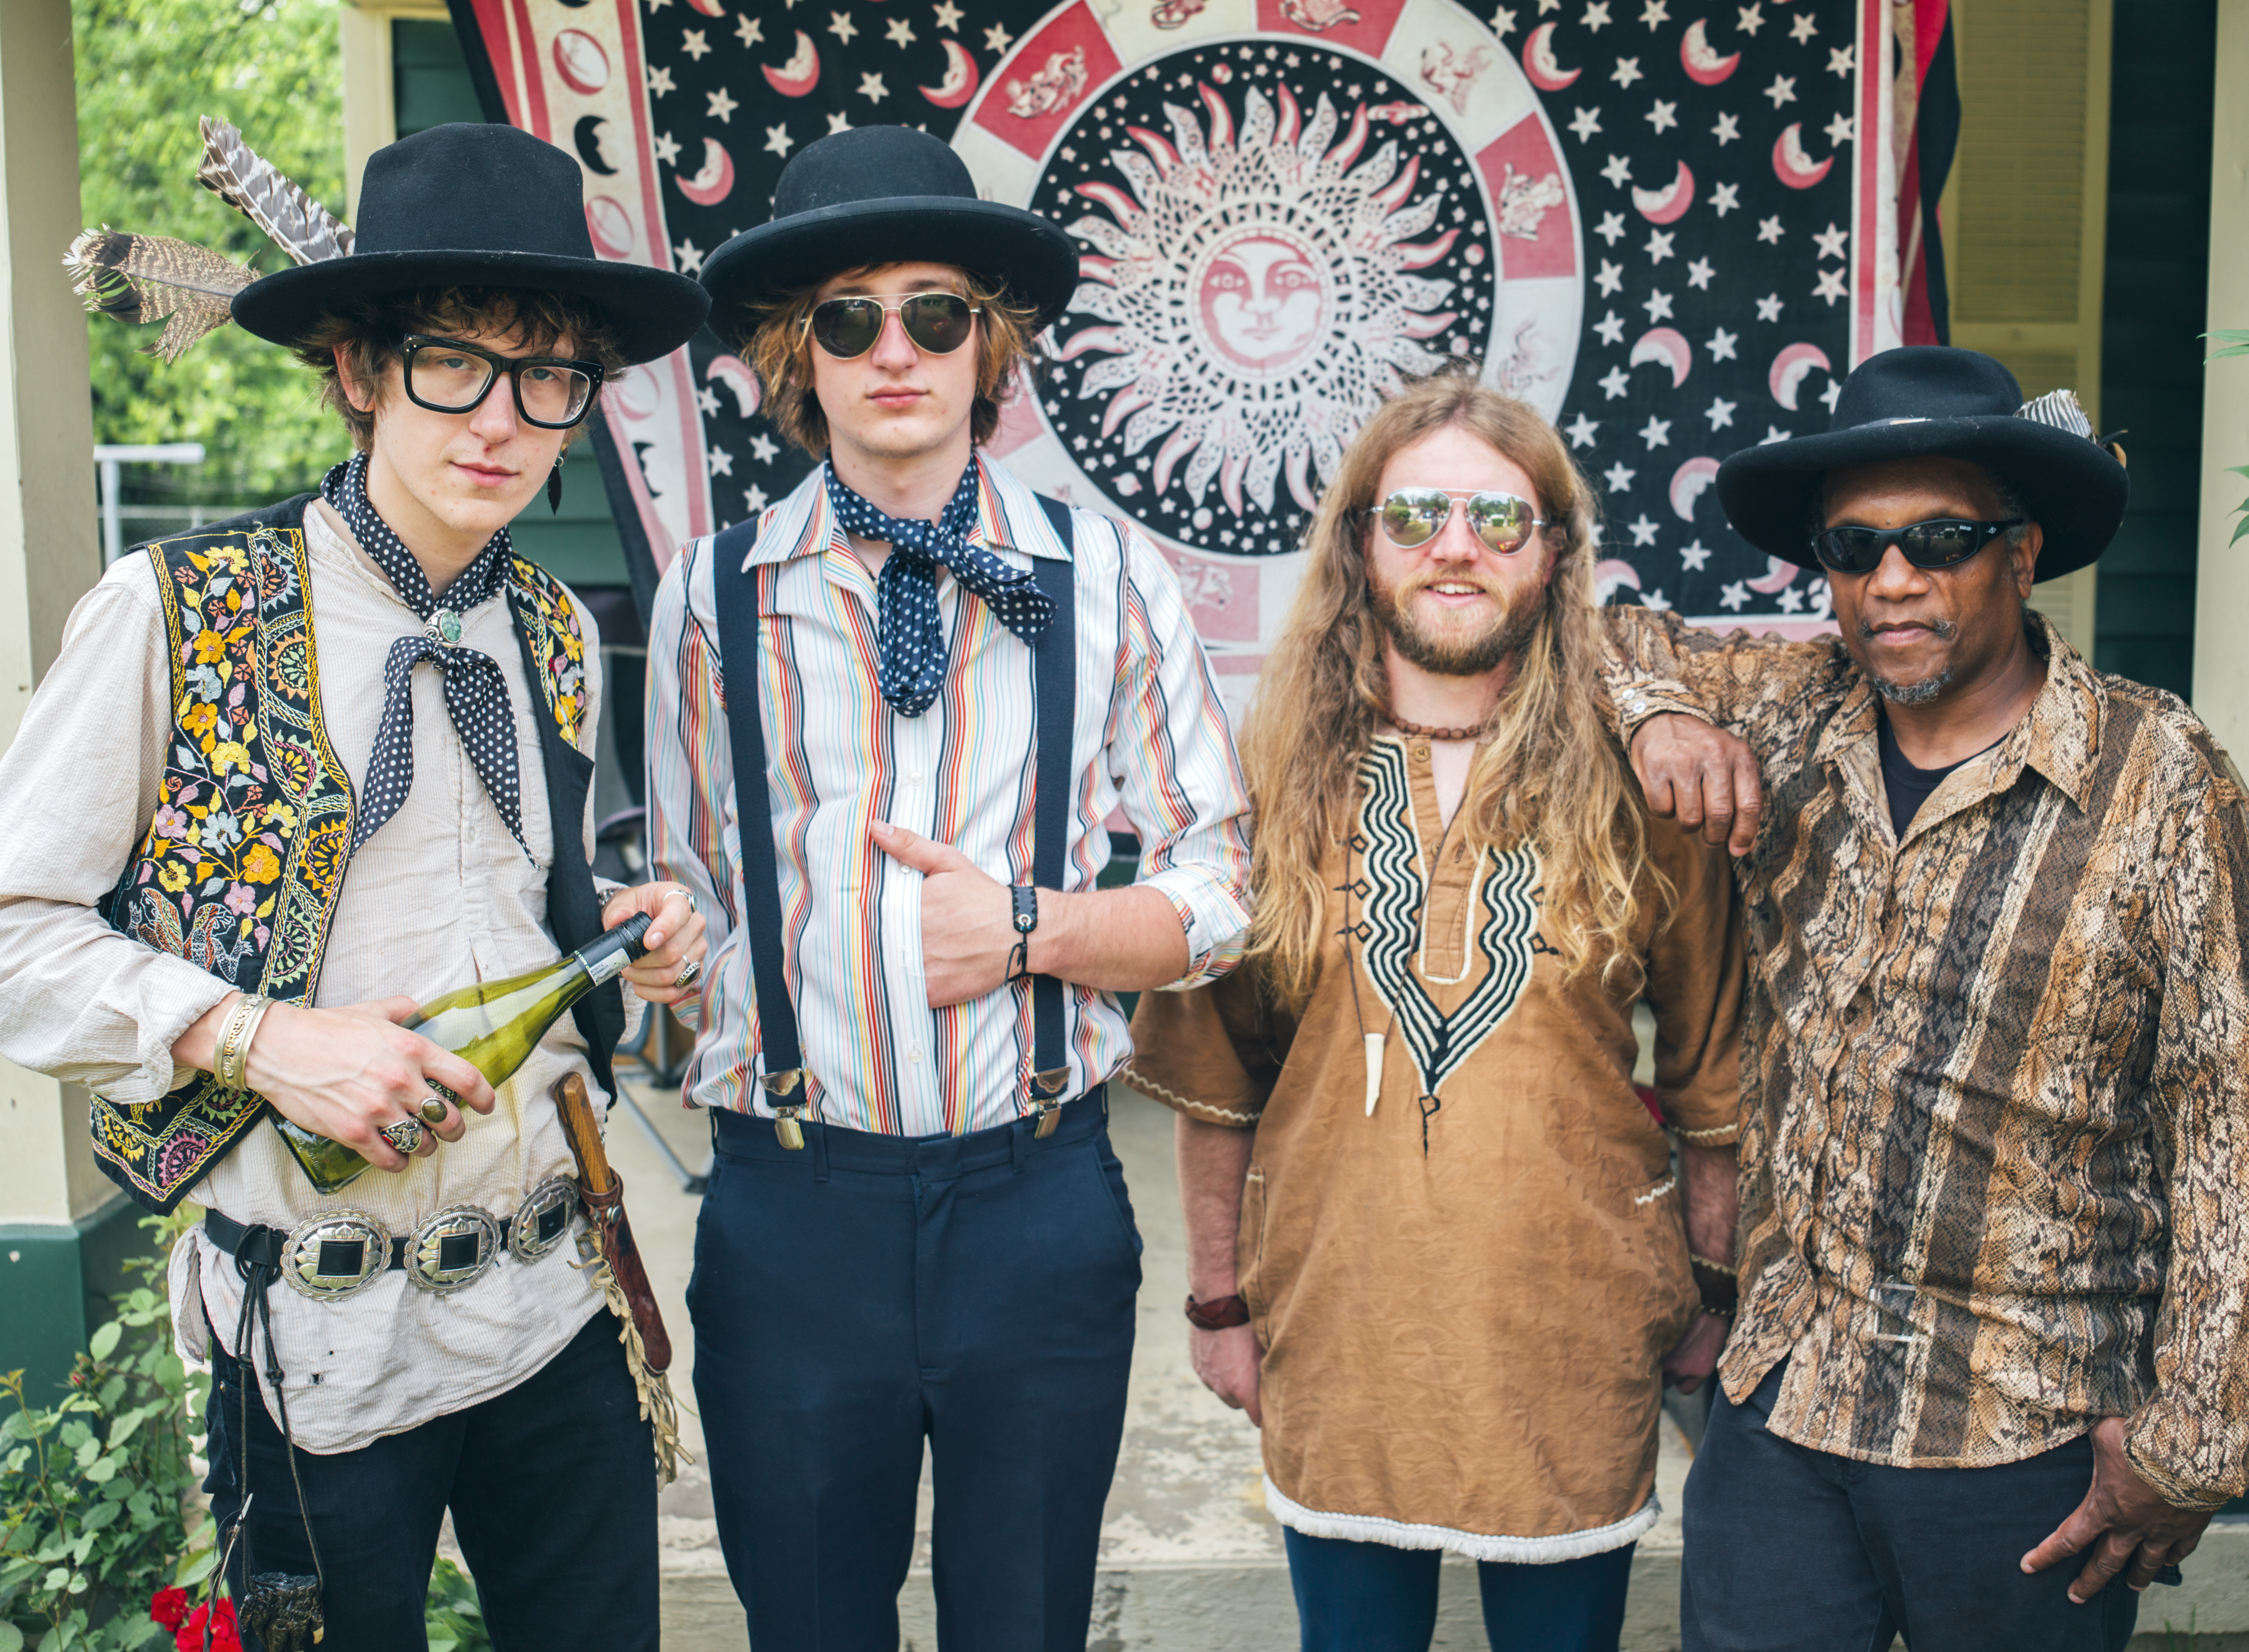 Blackfoot Gypsies Matthew Paige Zack Murphy - Drums Dylan Whitlow - Bass Vocals Ollie Dogg - Harmonica